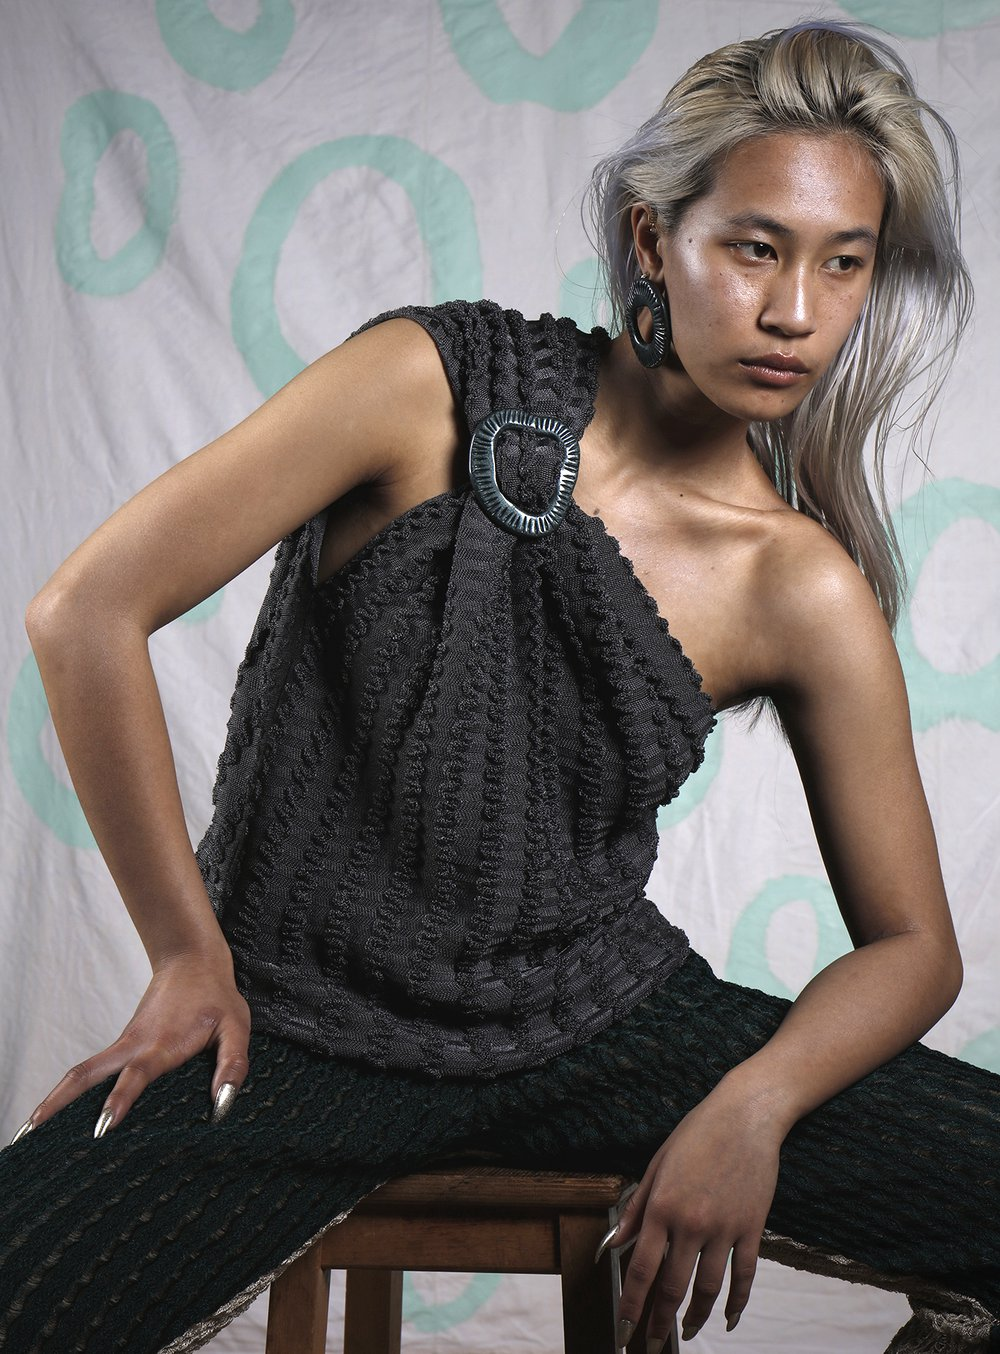 Knitted top and trousers